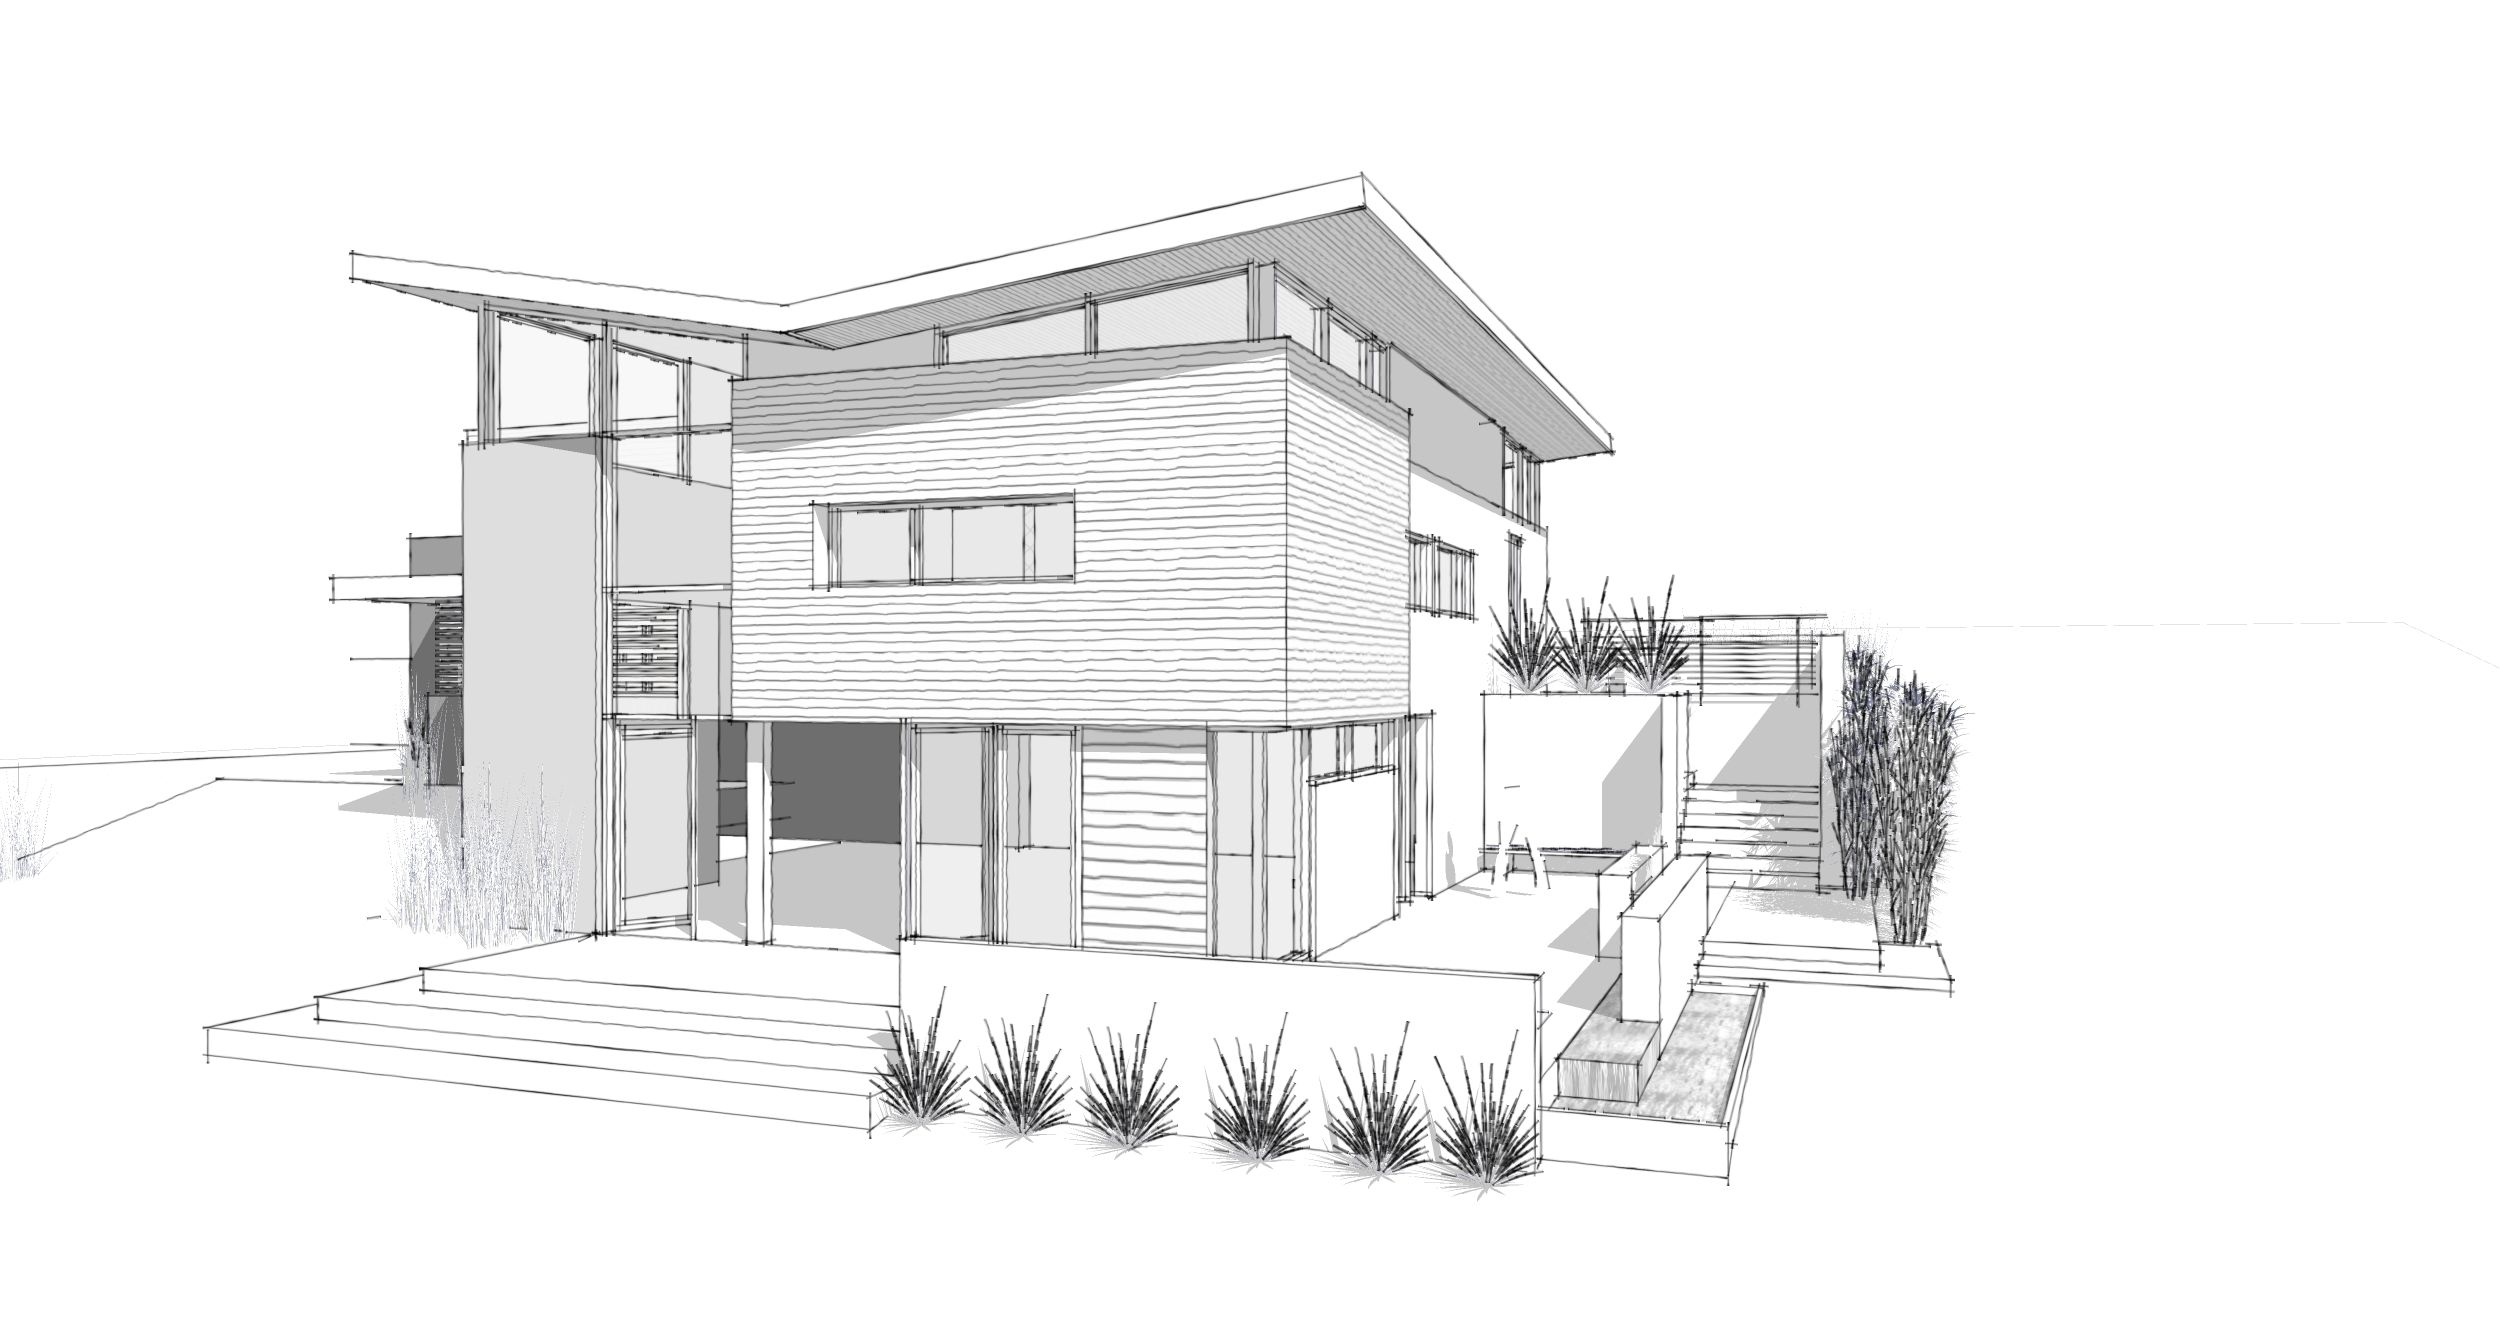 modern home architecture sketches design ideas 13435 ForHouse Sketches From Photos